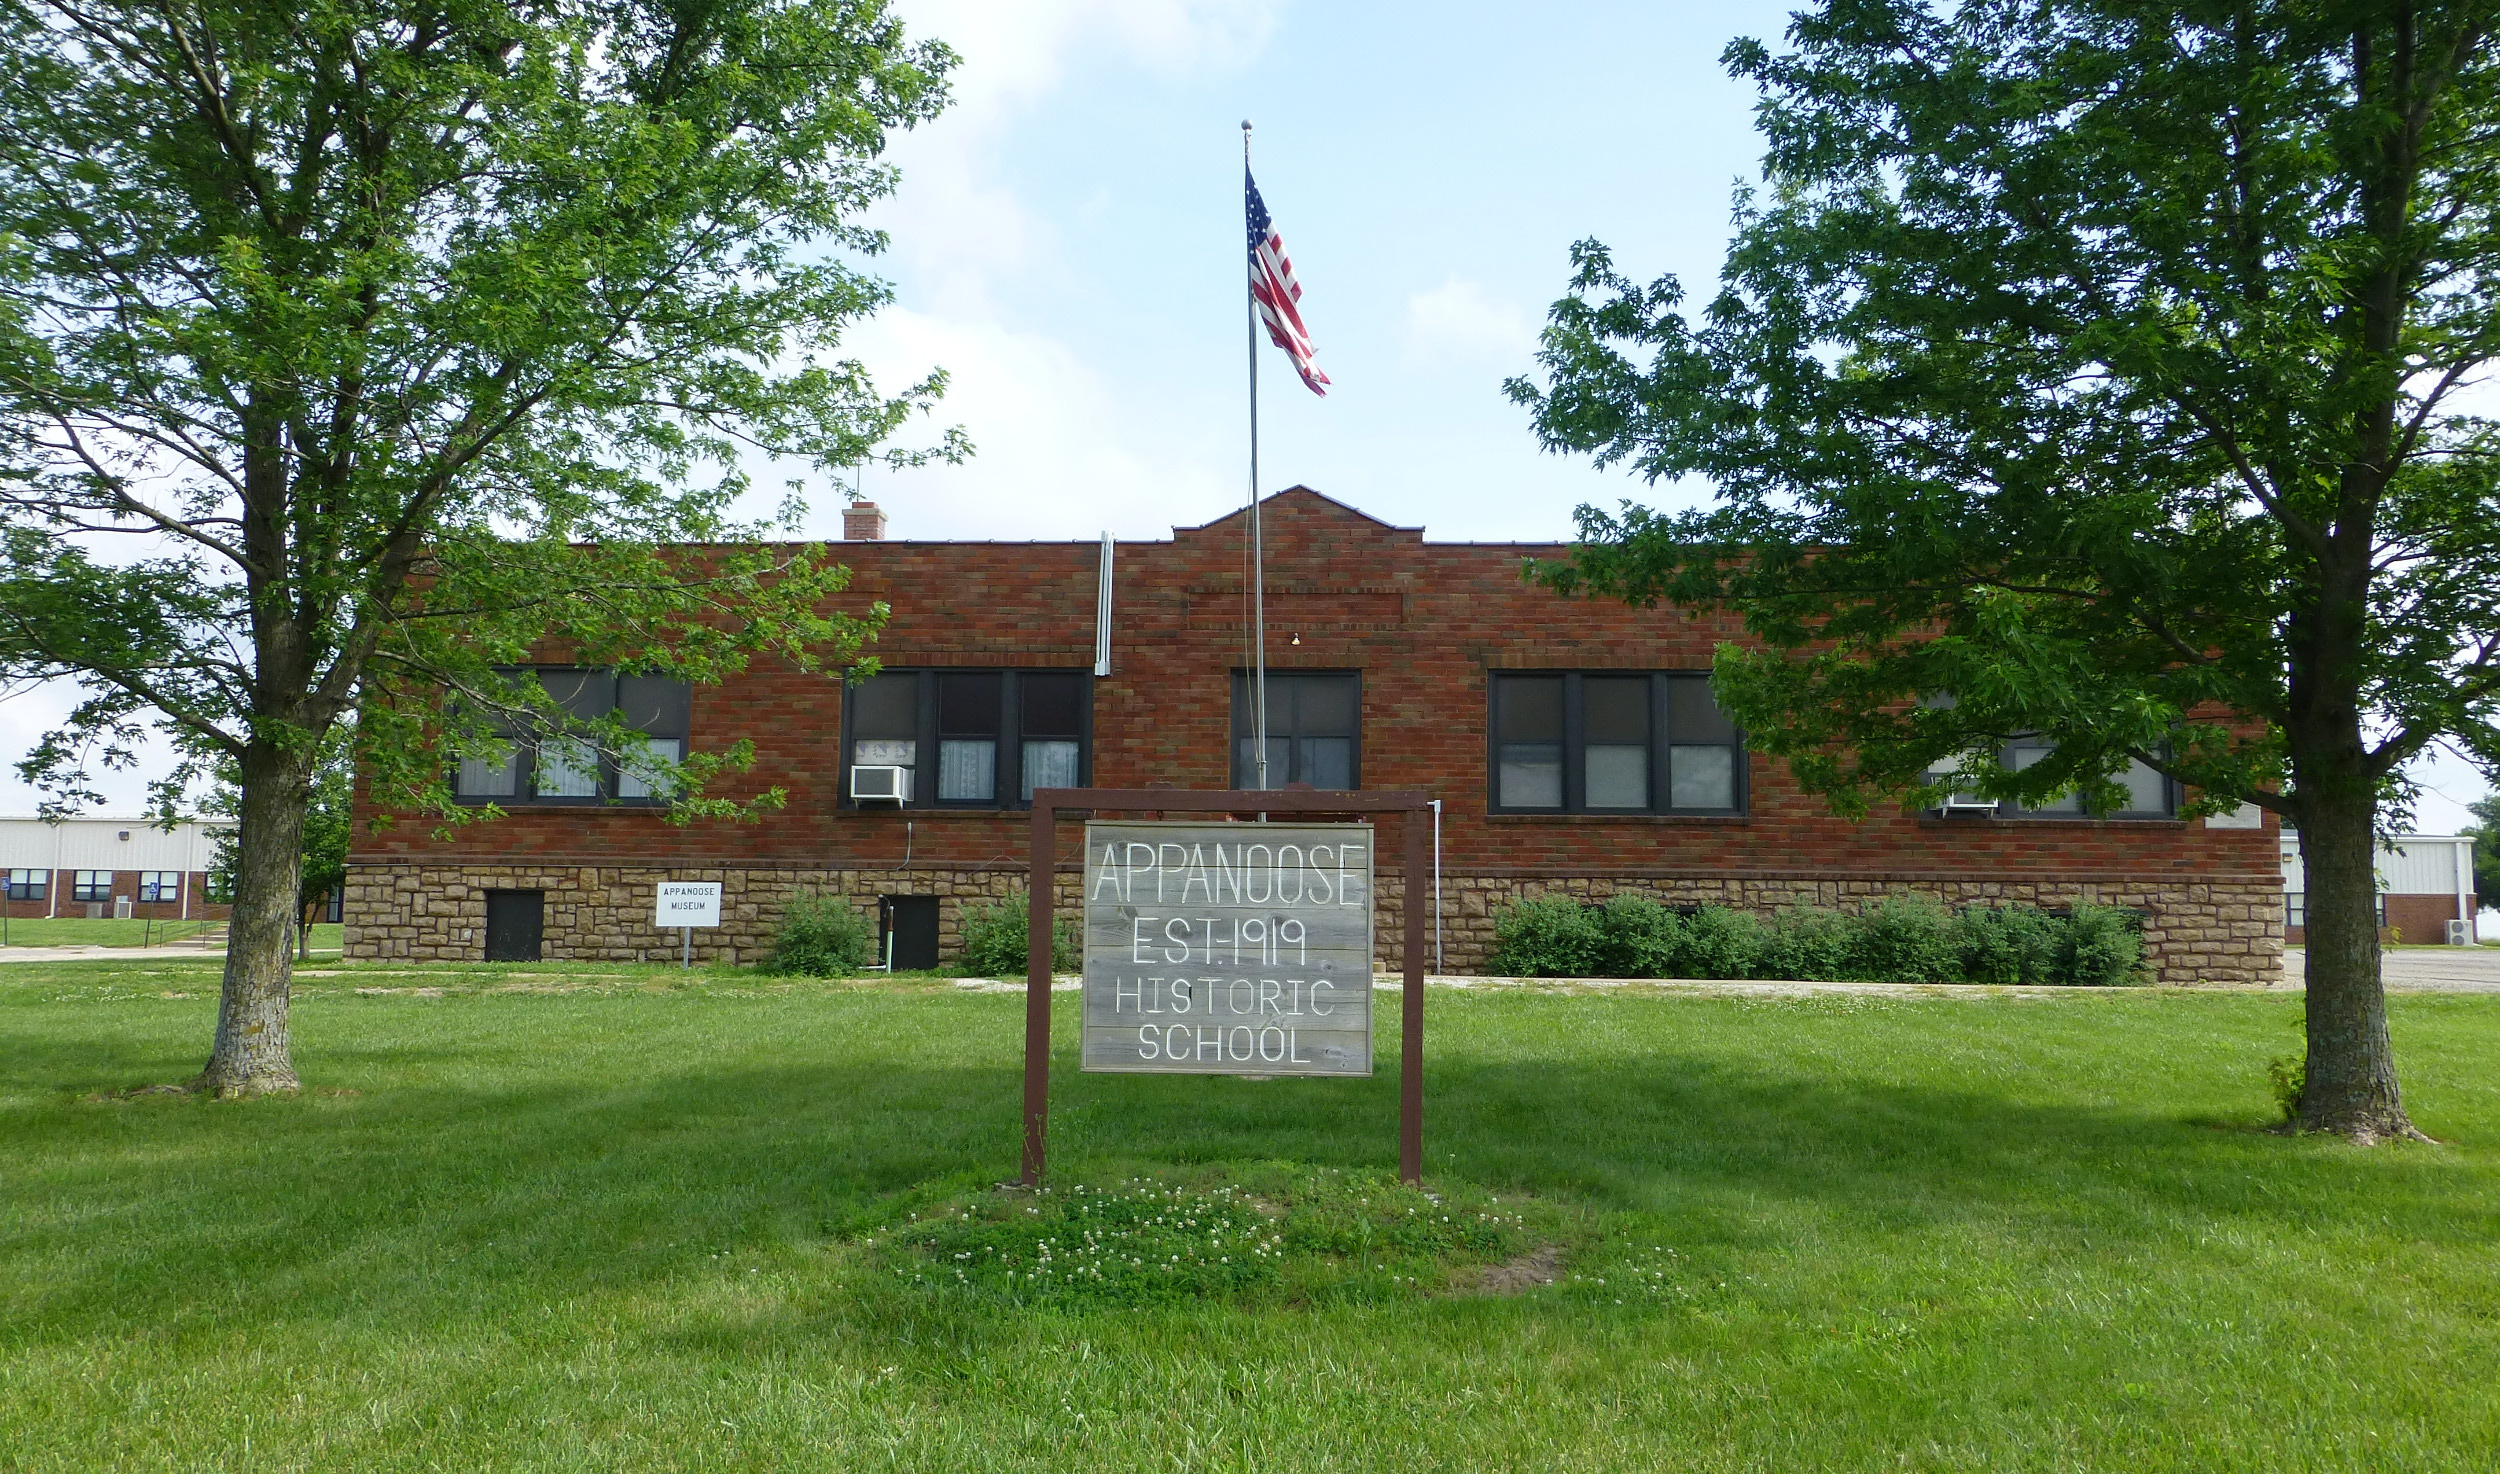 Kansas franklin county lane - Appanoose School Continues To Serve As A Community Center And Museum